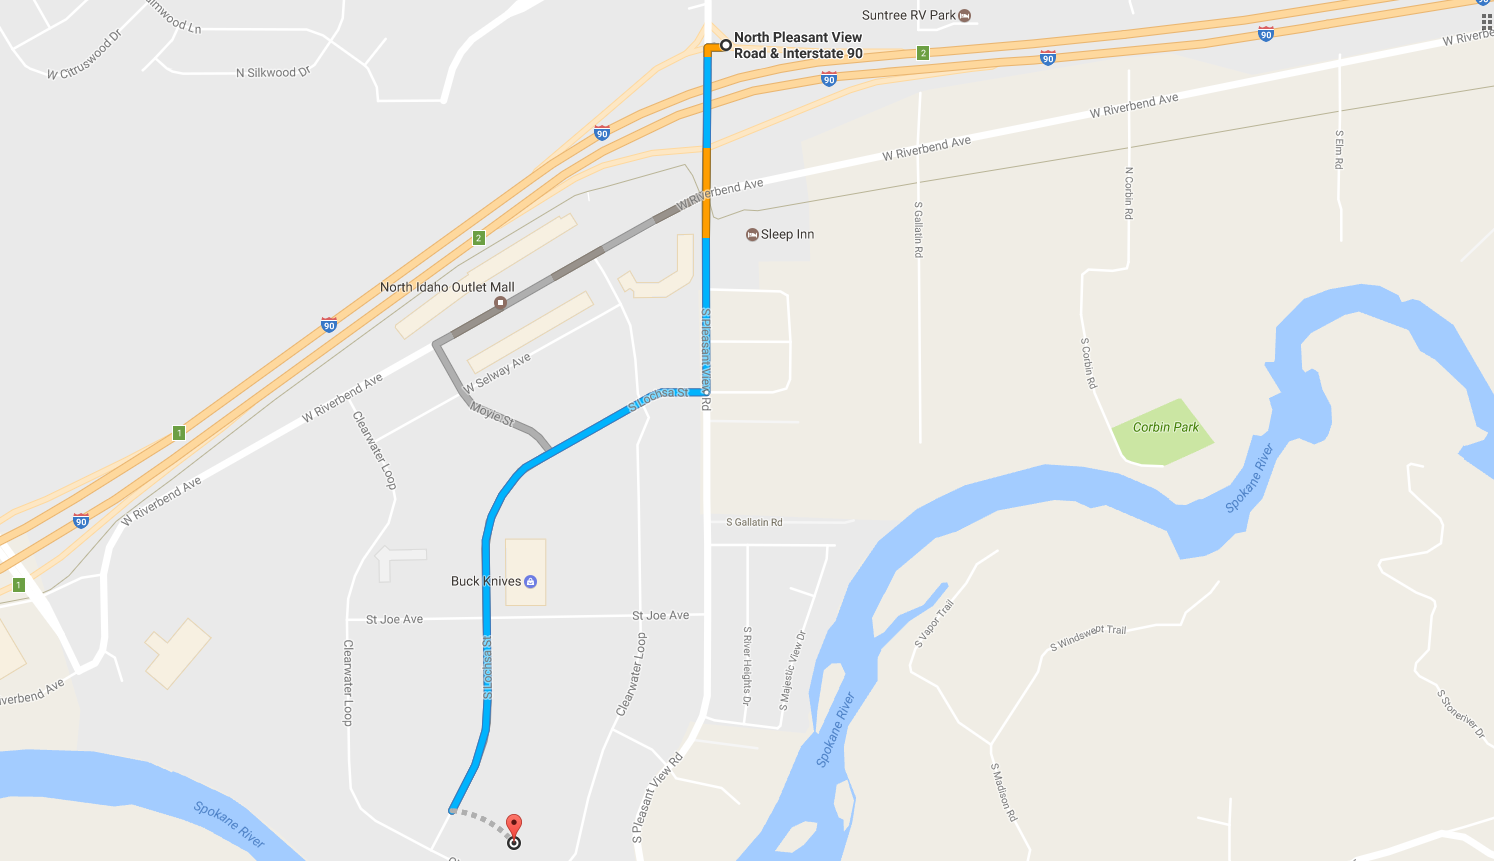 Map from I-90 West Pleasantview Road Exit